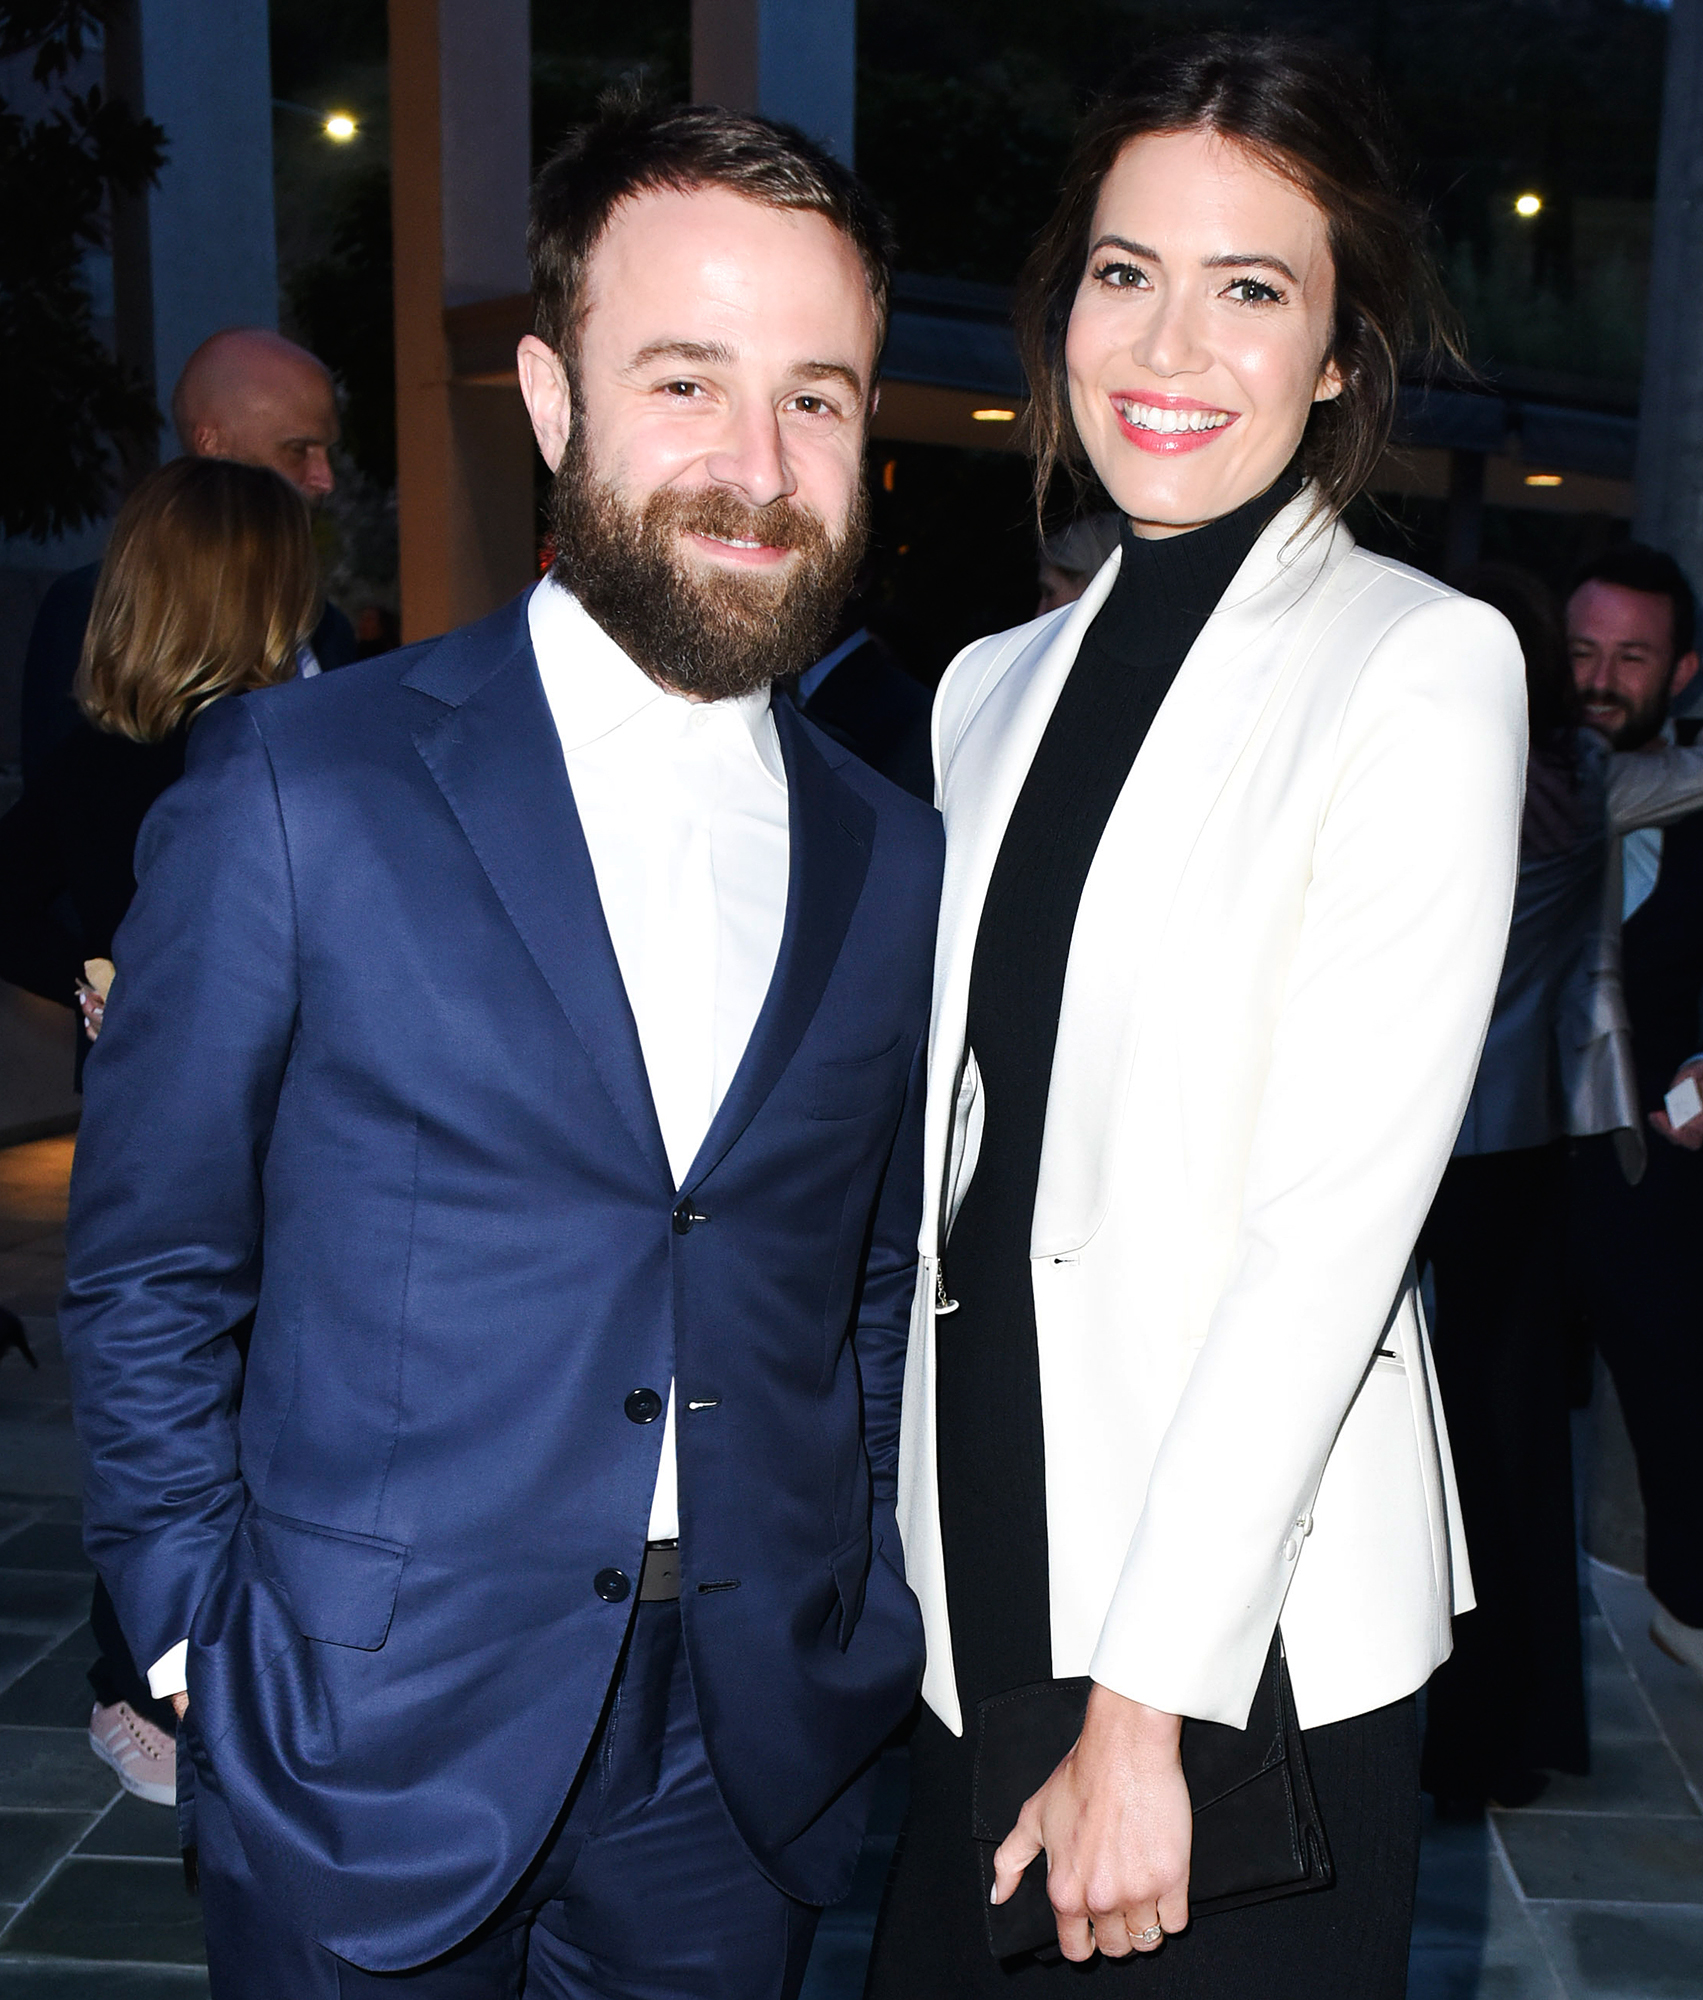 Mandy Moore Taylor Goldsmith Married - The couple exchanged vows in an intimate backyard wedding at their L.A. home on November 18. Guests included her This Is Us costars Milo Ventimiglia, Chrissy Metz and Sterling K. Brown, as well as her ex Wilmer Valderrama and best friend Minka Kelly.